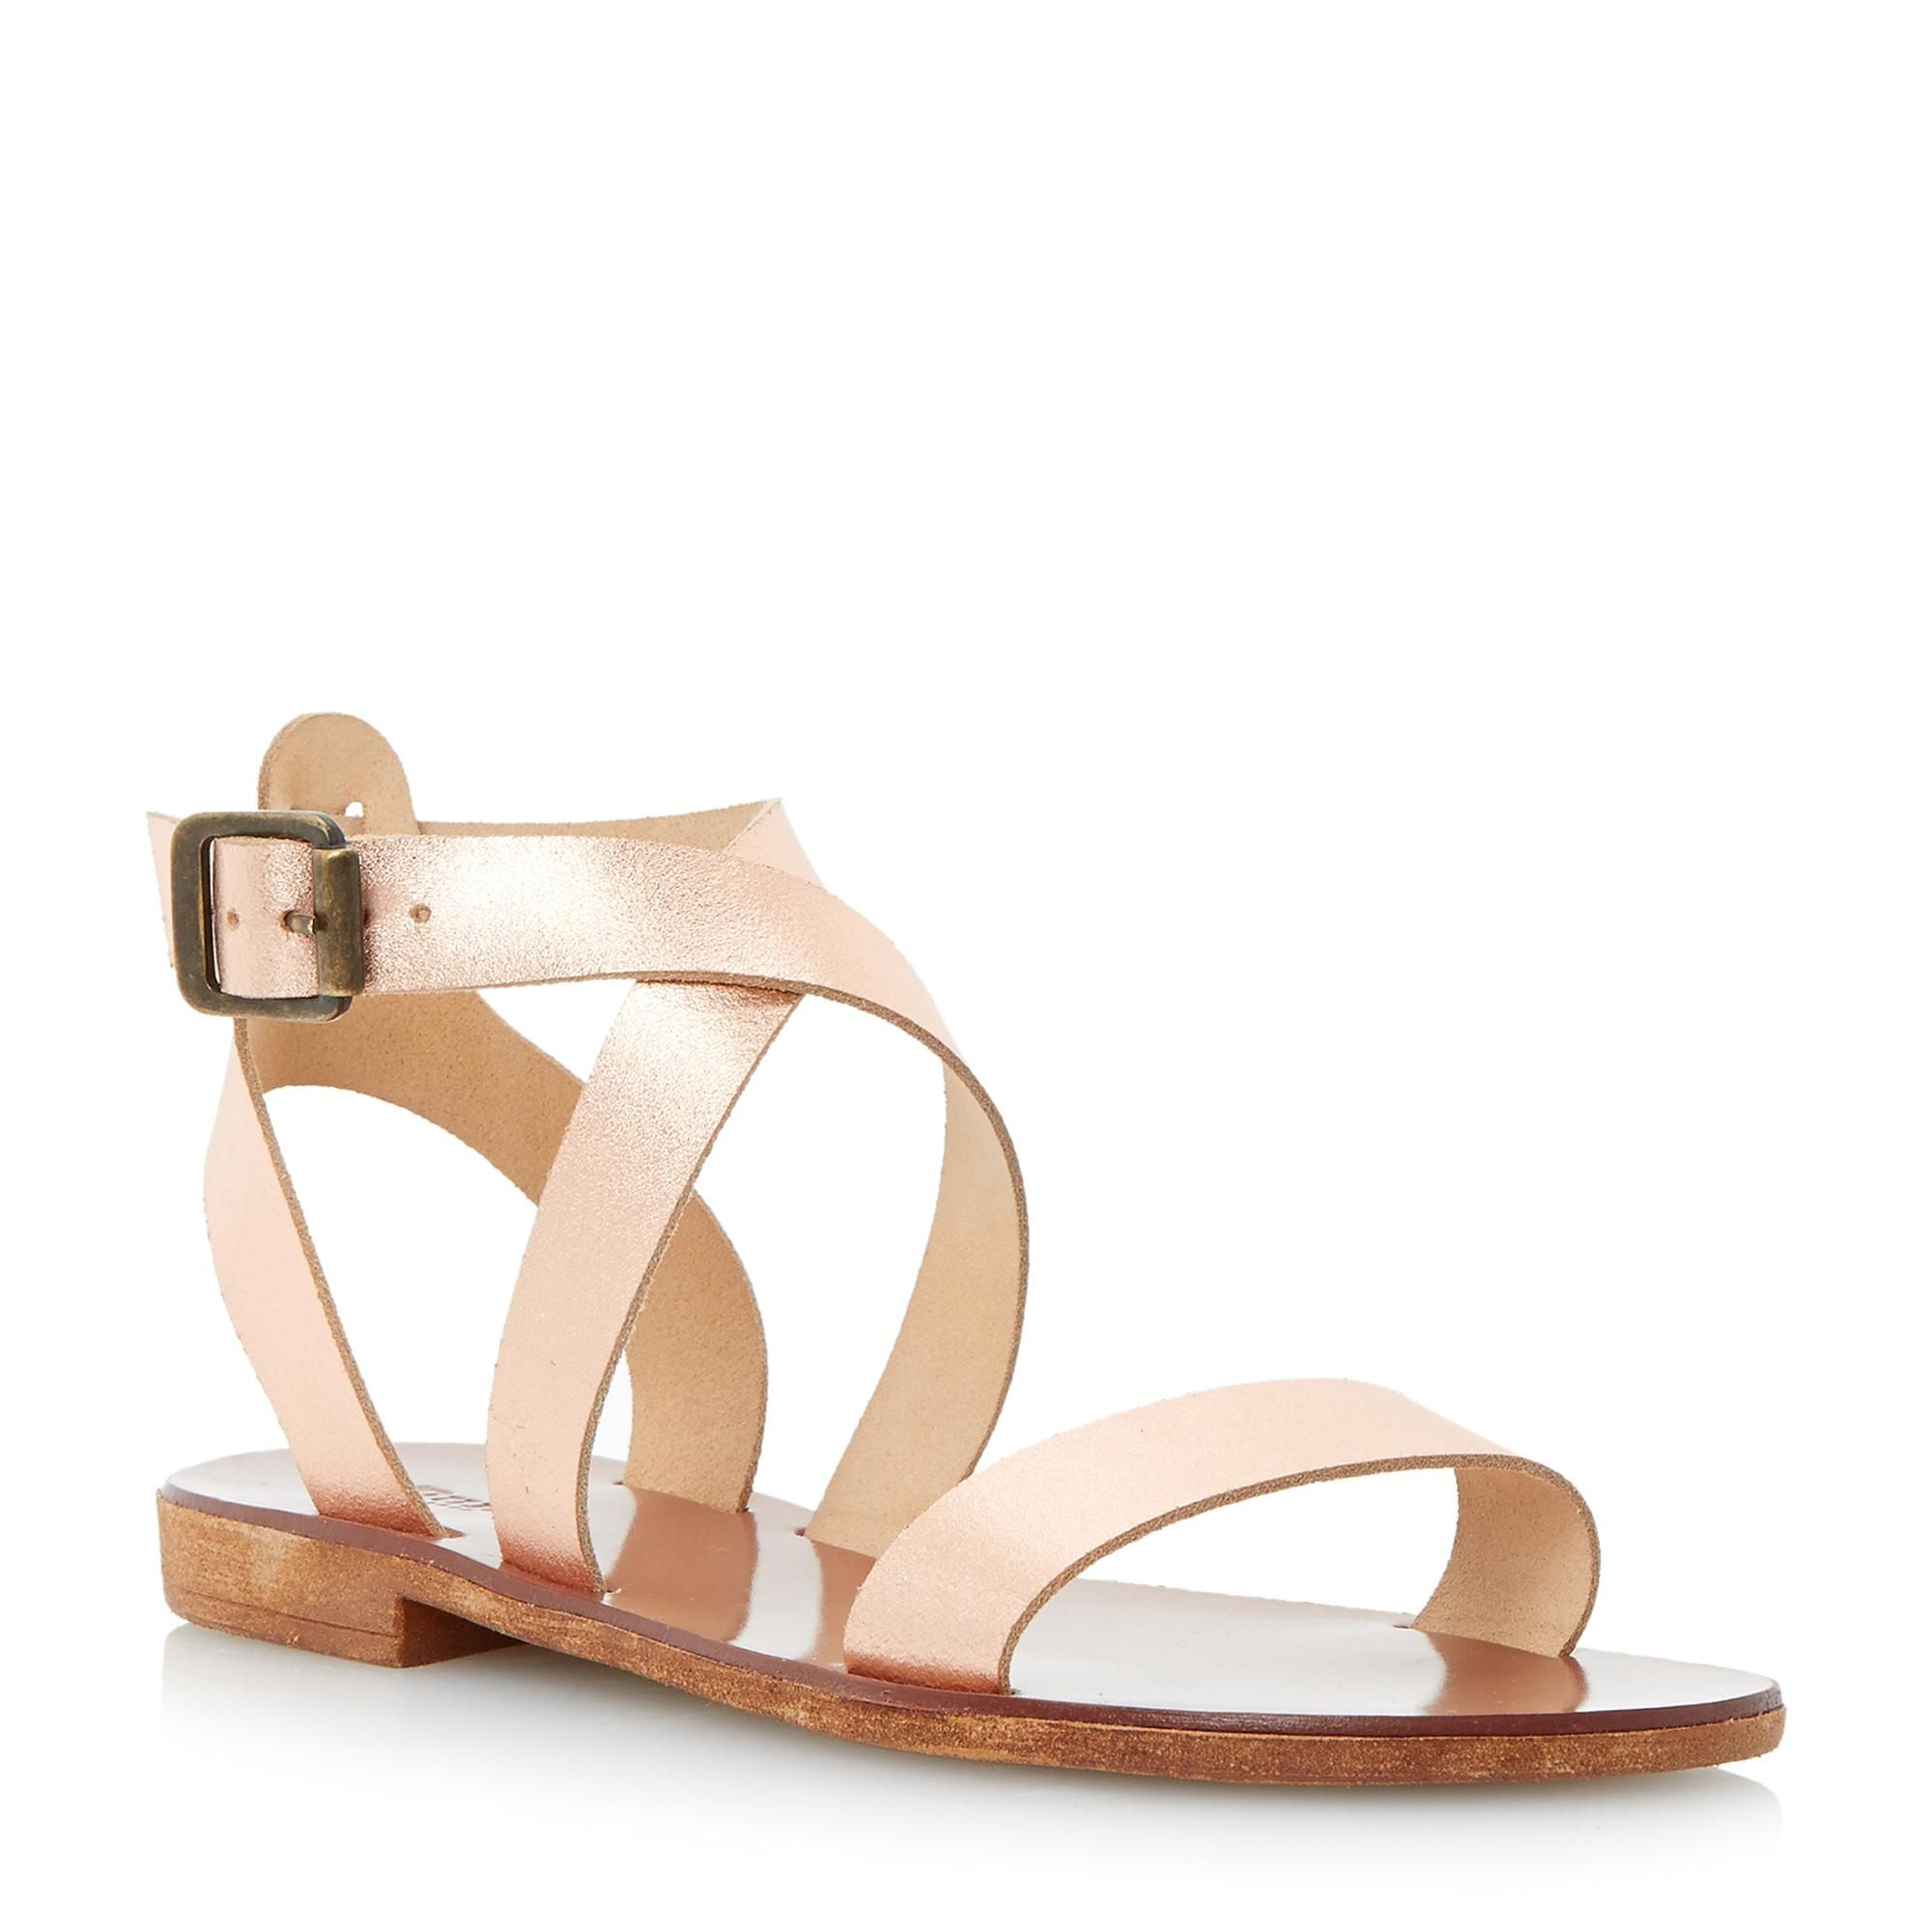 21c964a37 DUNE LADIES LOTTI - Leather Cross Over Strap Flat Sandal - rose gold ...